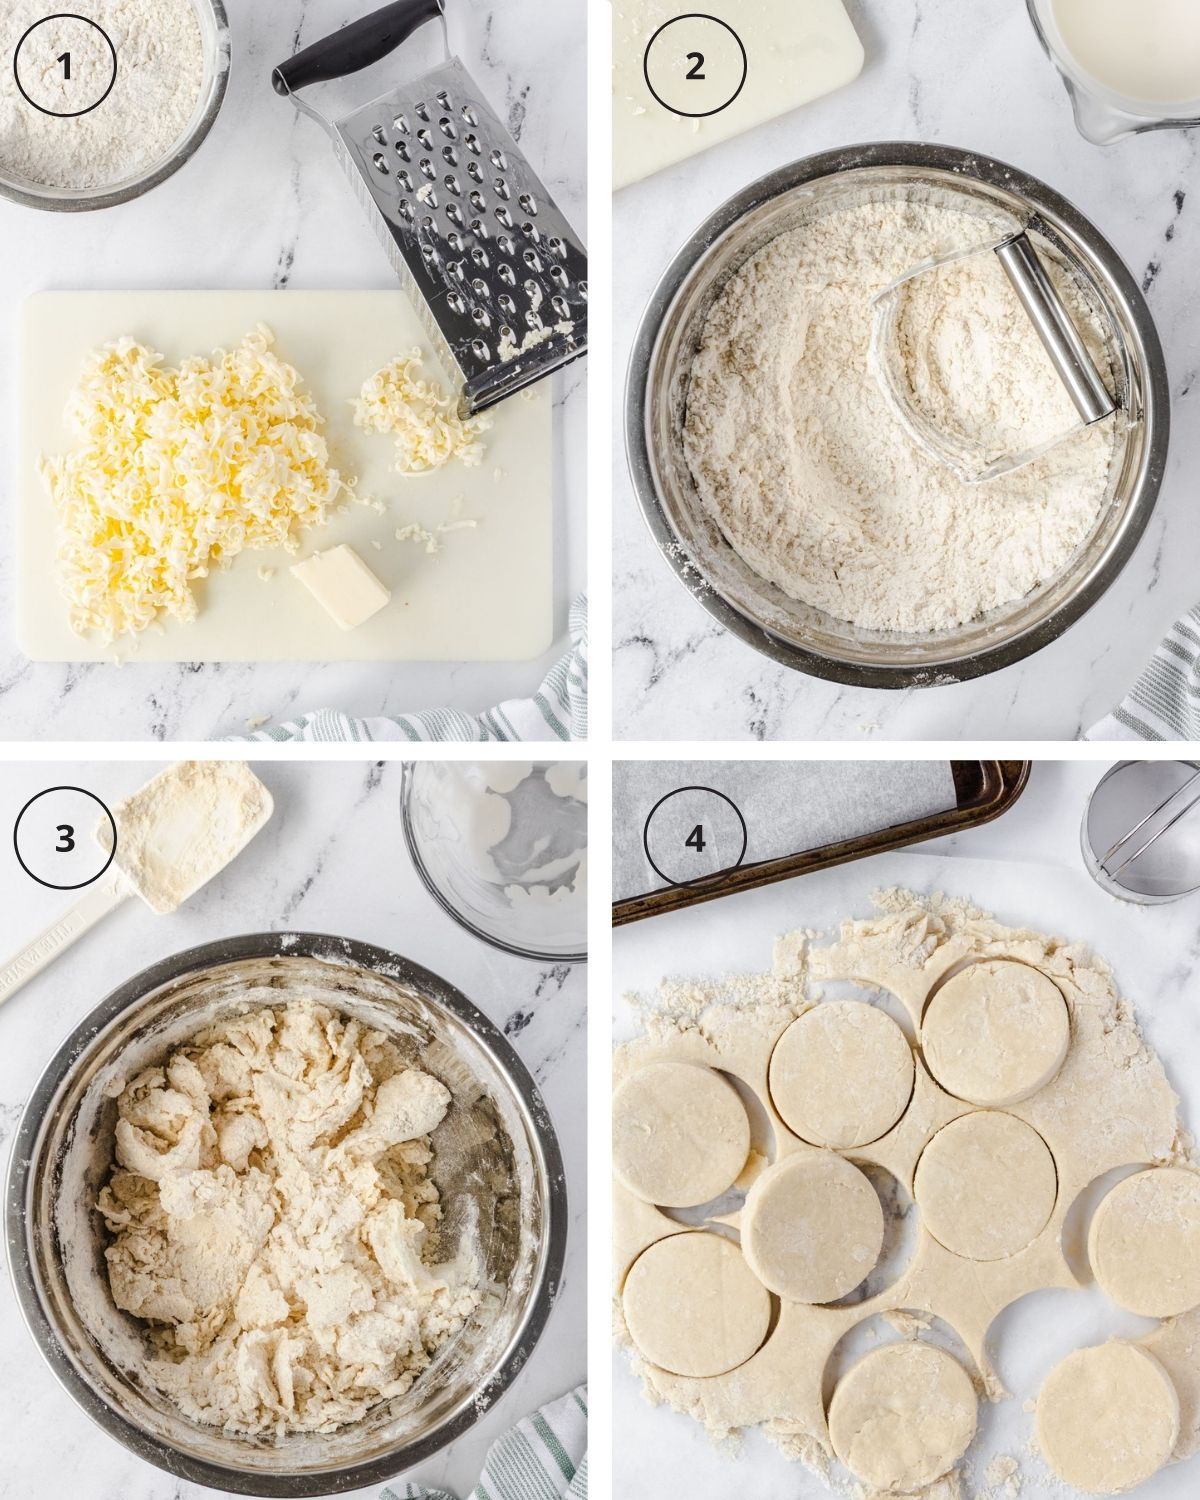 Collage of shortcake steps: 1) Grating butter, 2) Pastry cutter in bowl with flour and butter, 3) Crumbled dough in bowl, 4) Dough cut into circles.